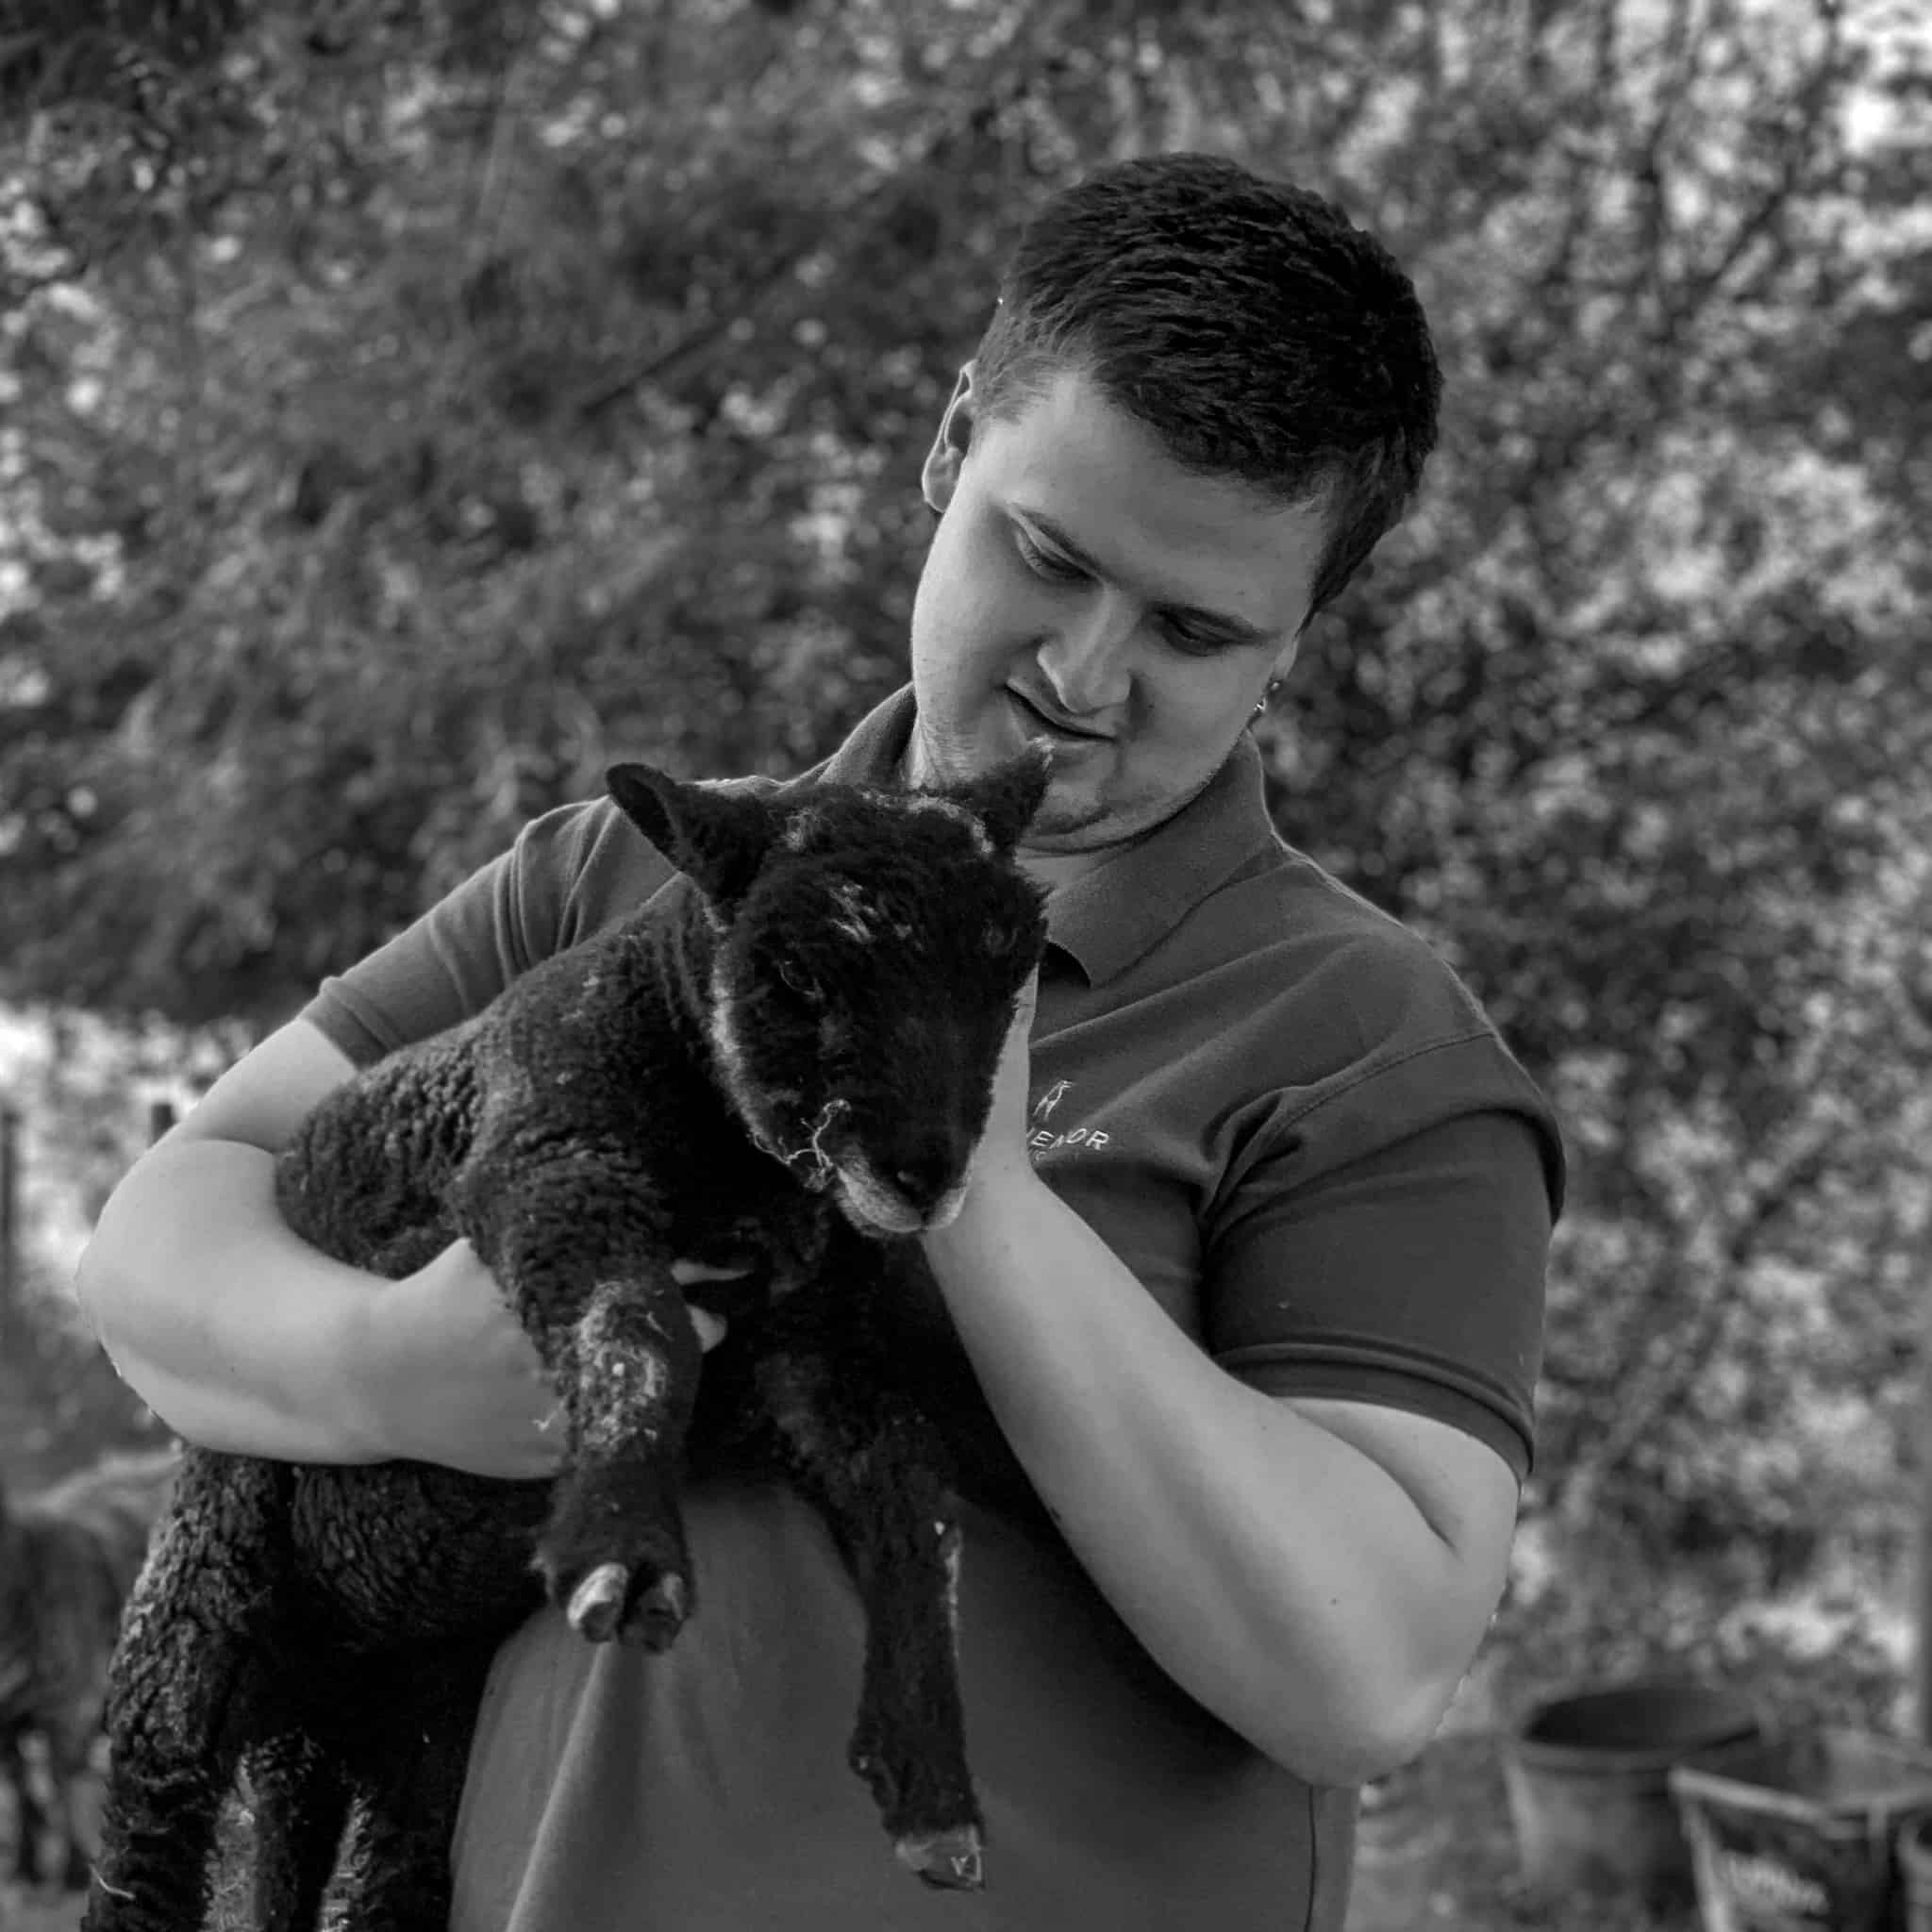 A black and white image of a man holding a dark lamb.